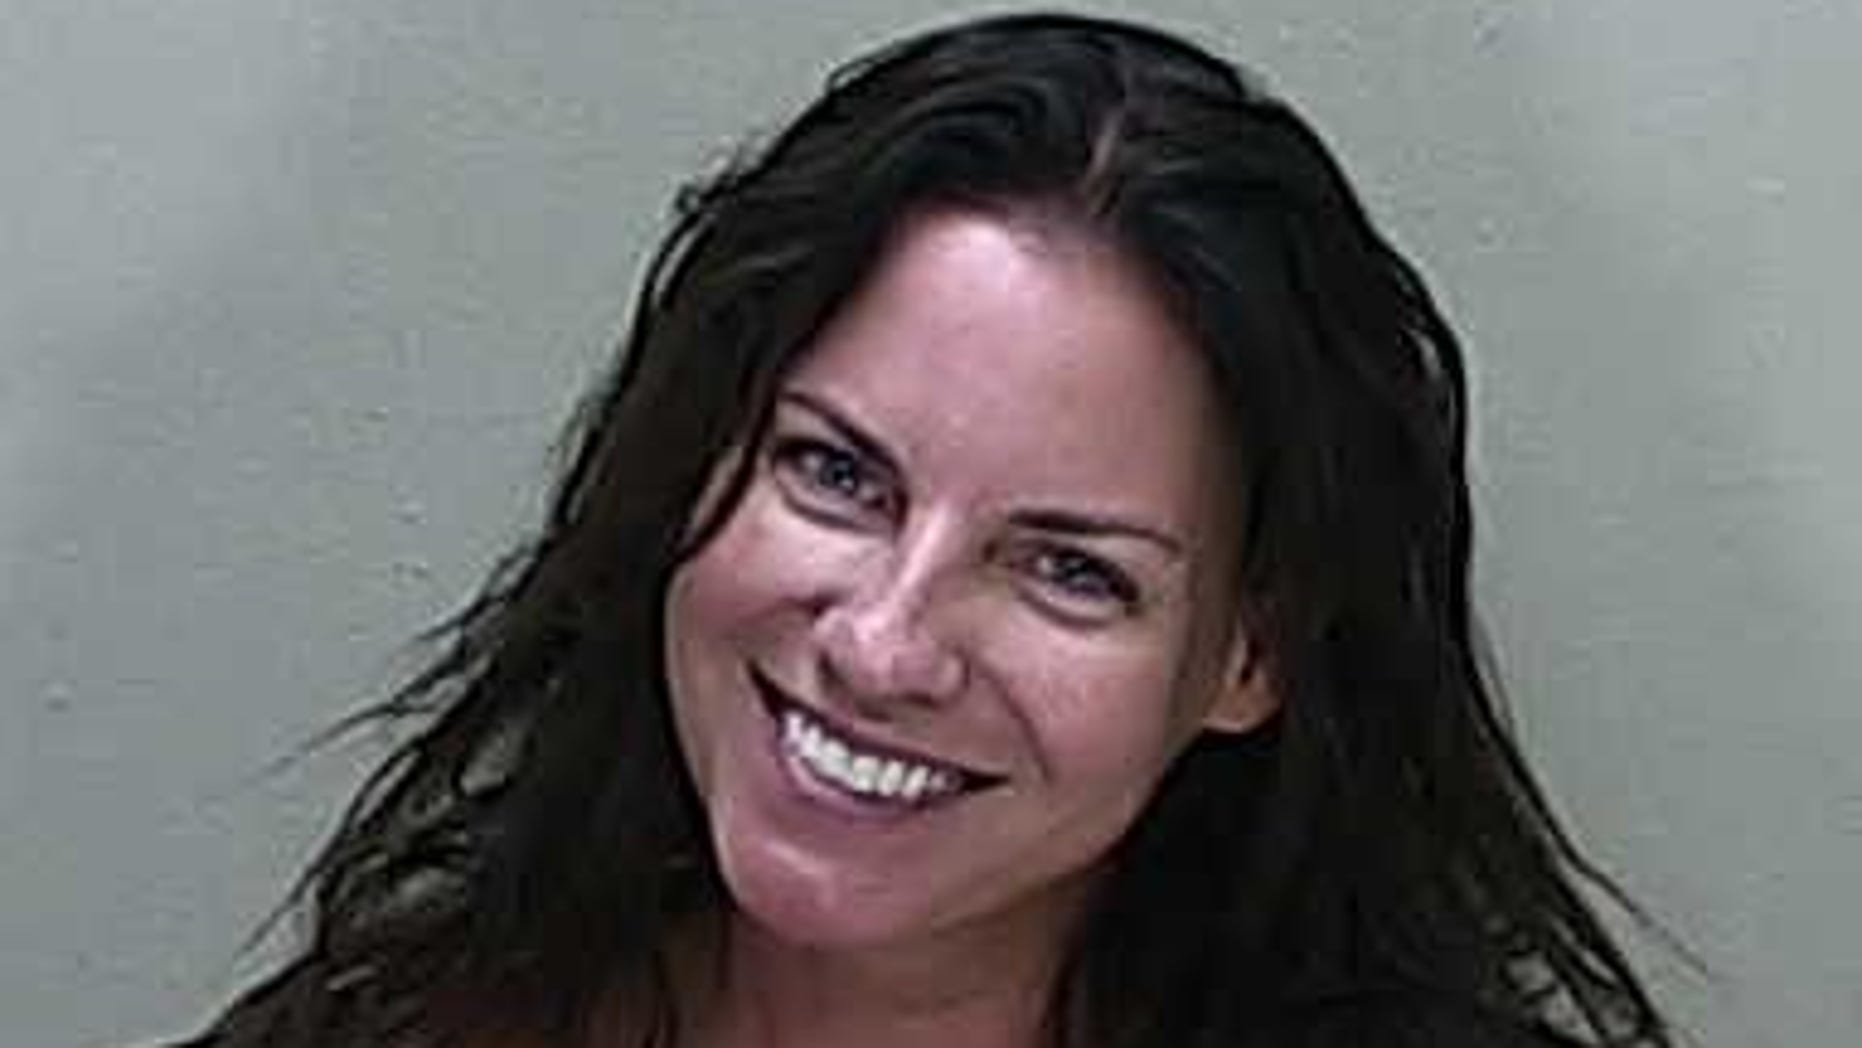 Angenette Welk, 44, smiling in her mugshot following a DUI crash that killed a mother days later, officials say.